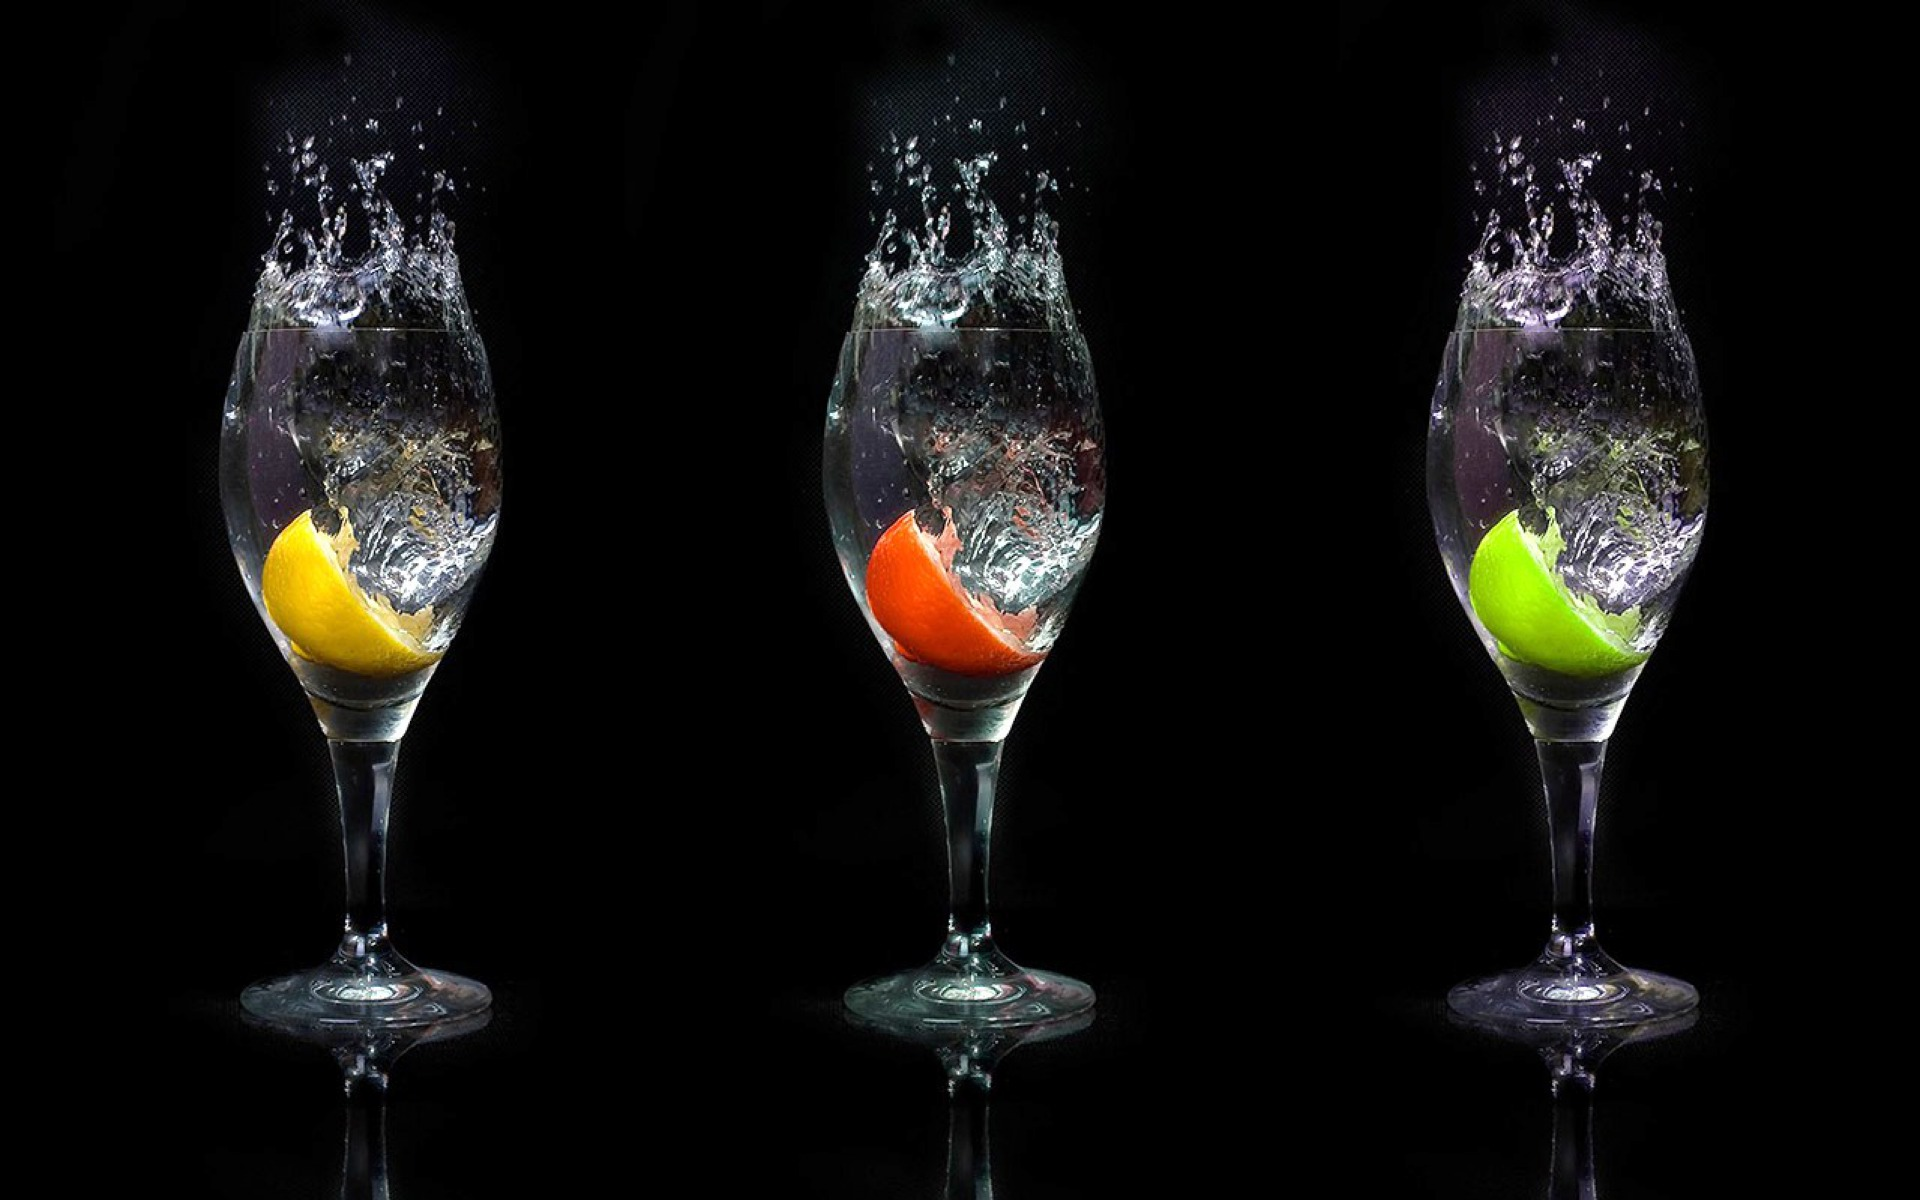 Water Fruit Slices Glasses Wallpapers Water Fruit Slices Glasses